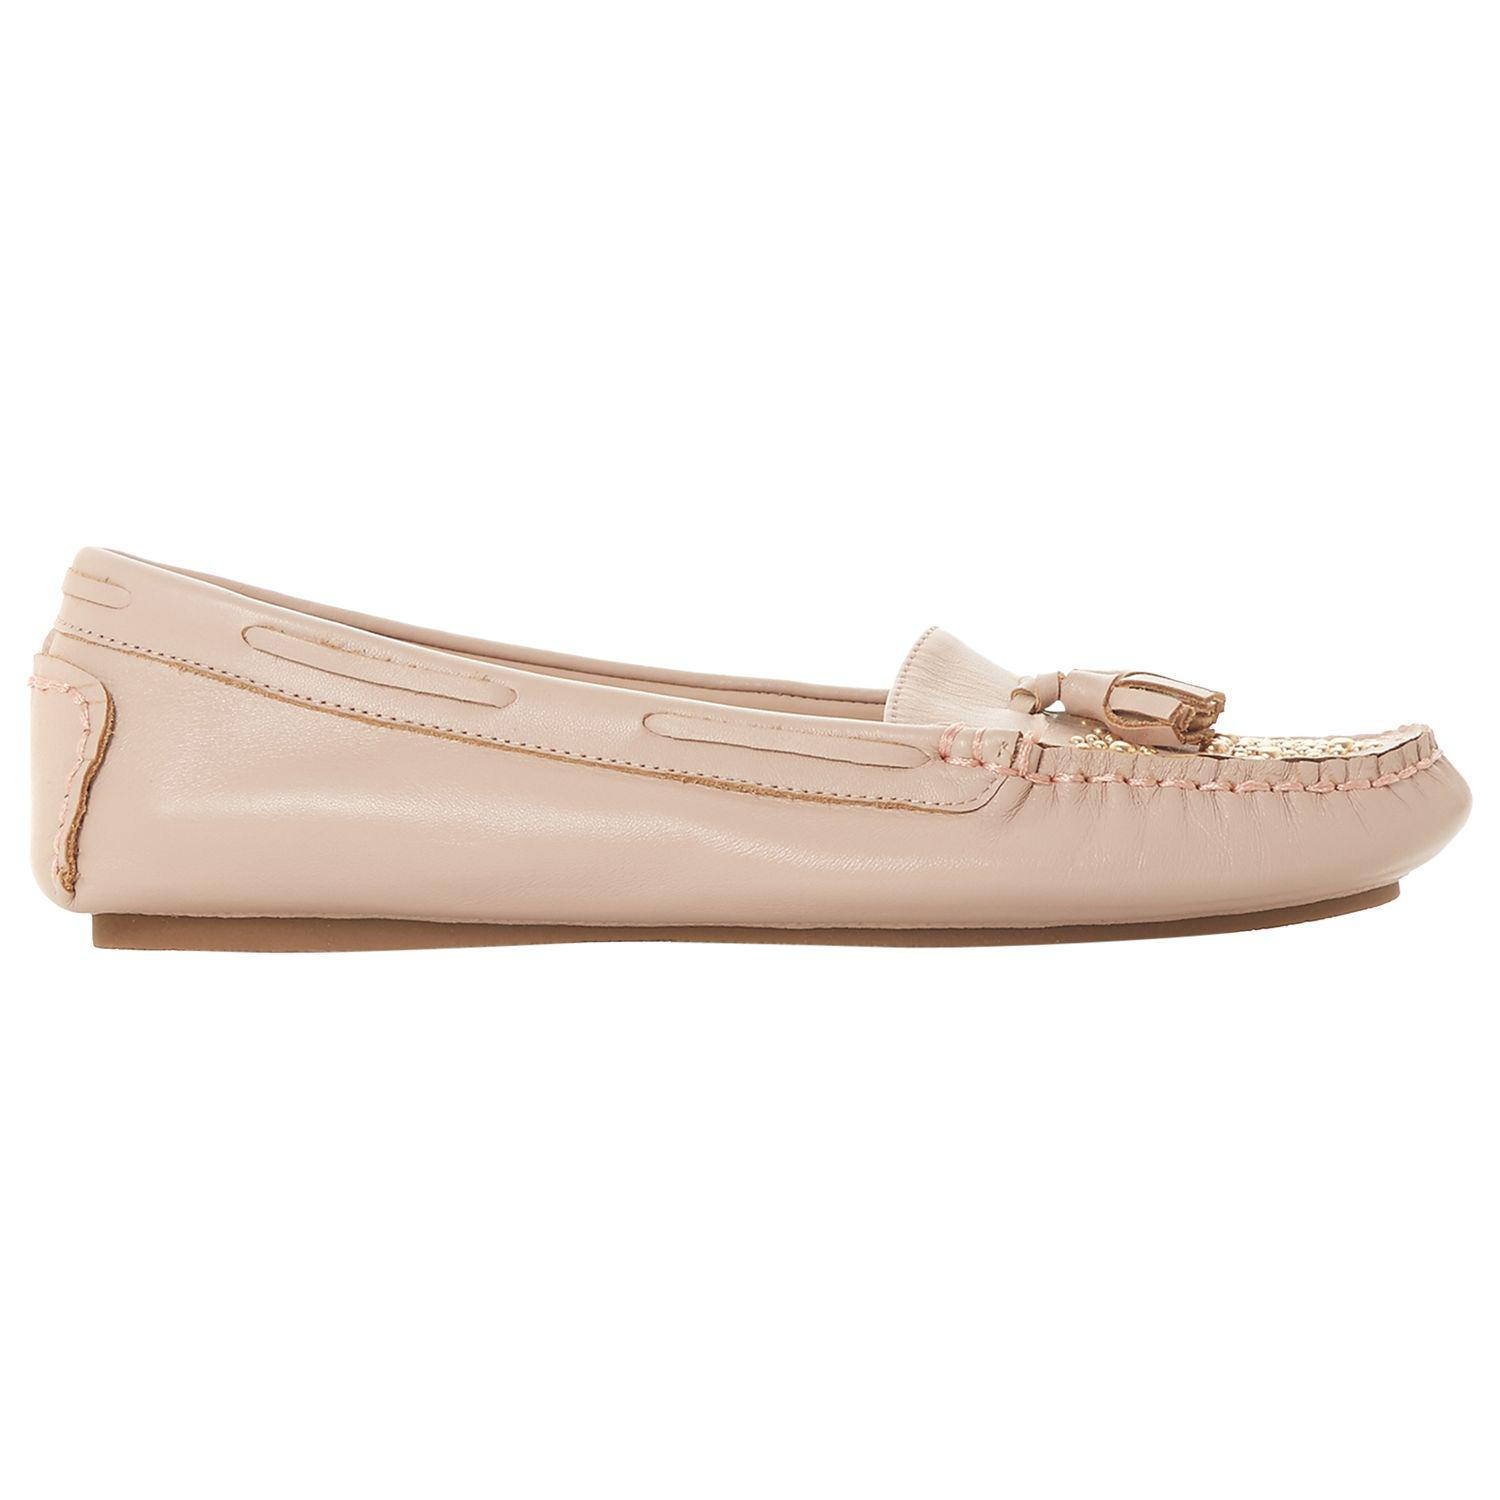 22509765c35 Dune Greatful Embellished Loafers in Pink - Lyst